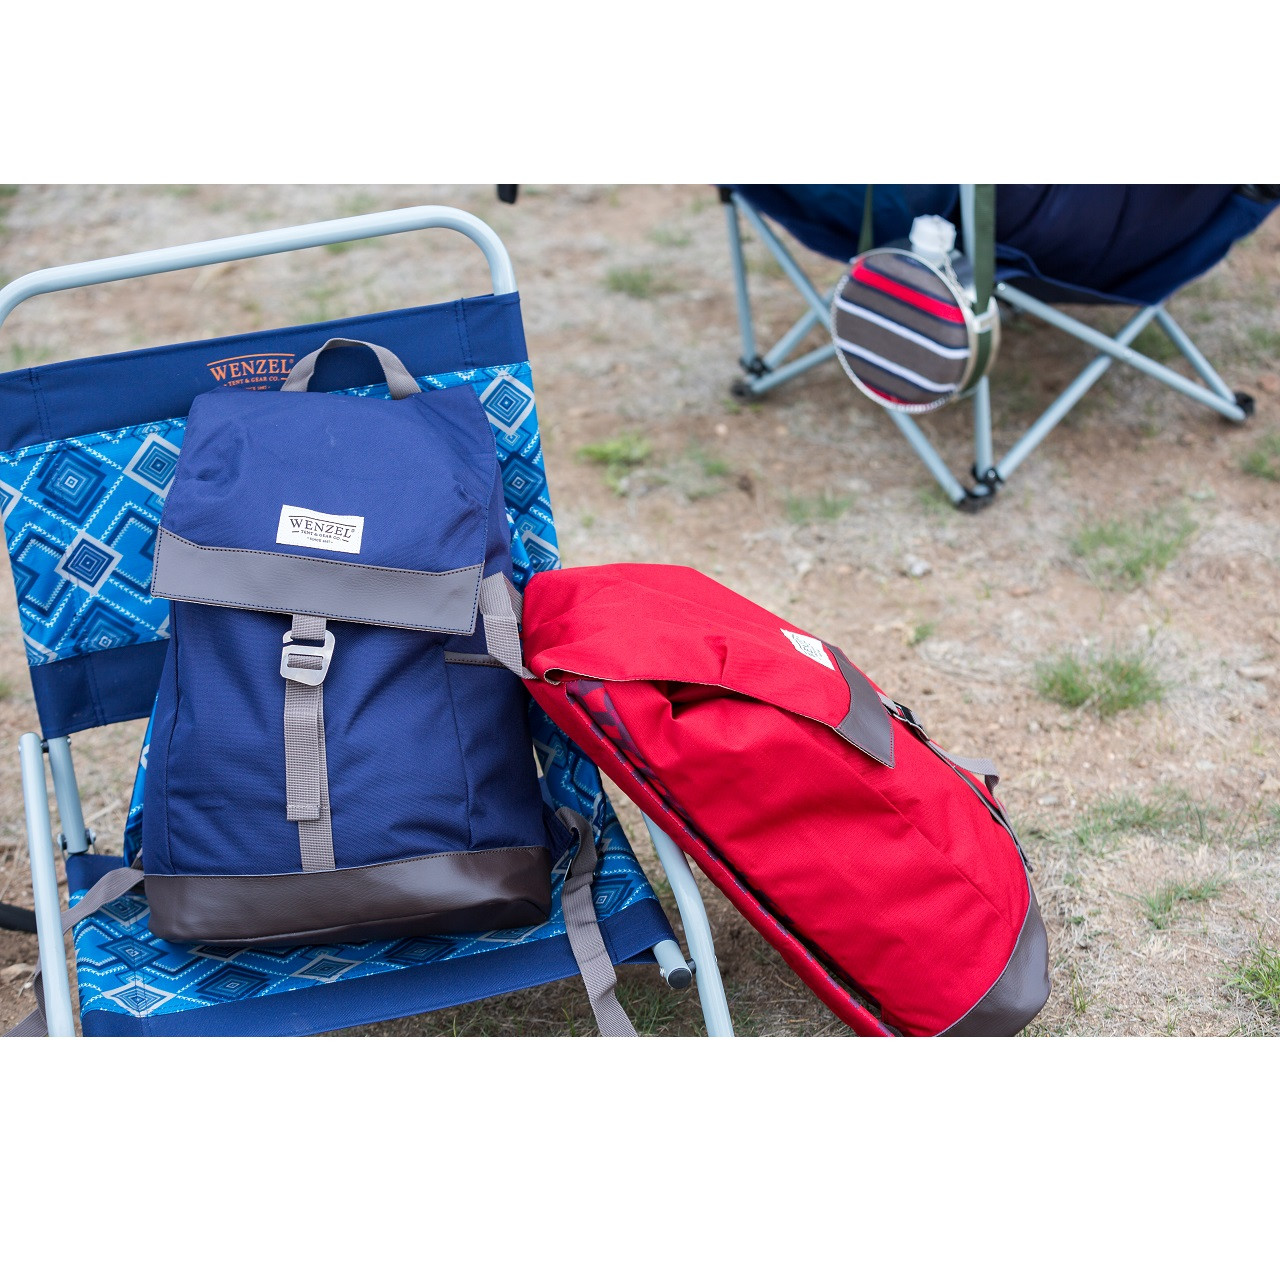 Two Wenzel Stache 20 backpacks, red and blue, sitting on a Wenzel chair outside